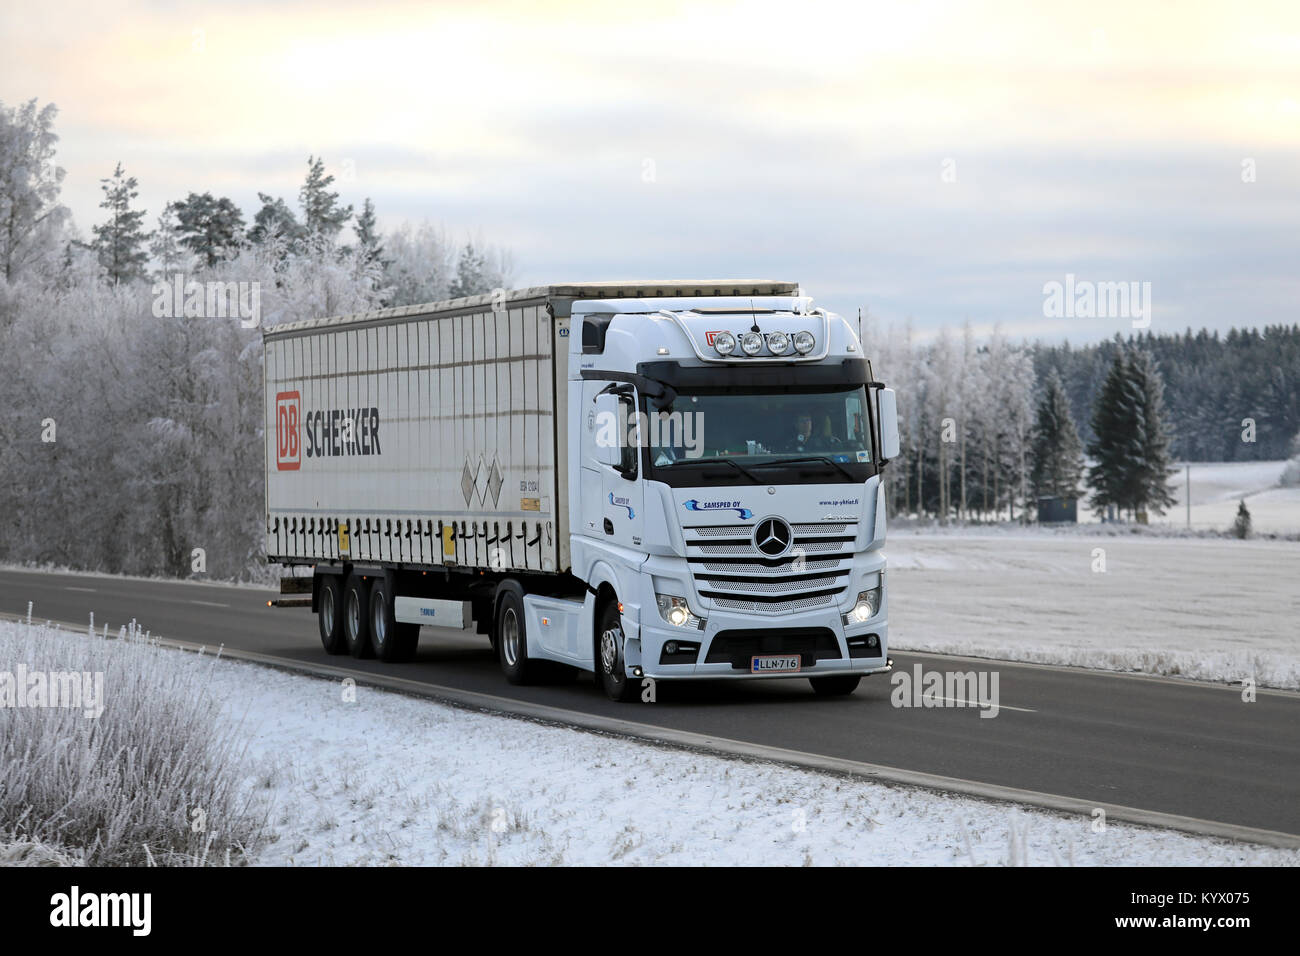 mercedes lorry stock photos mercedes lorry stock images alamy. Black Bedroom Furniture Sets. Home Design Ideas